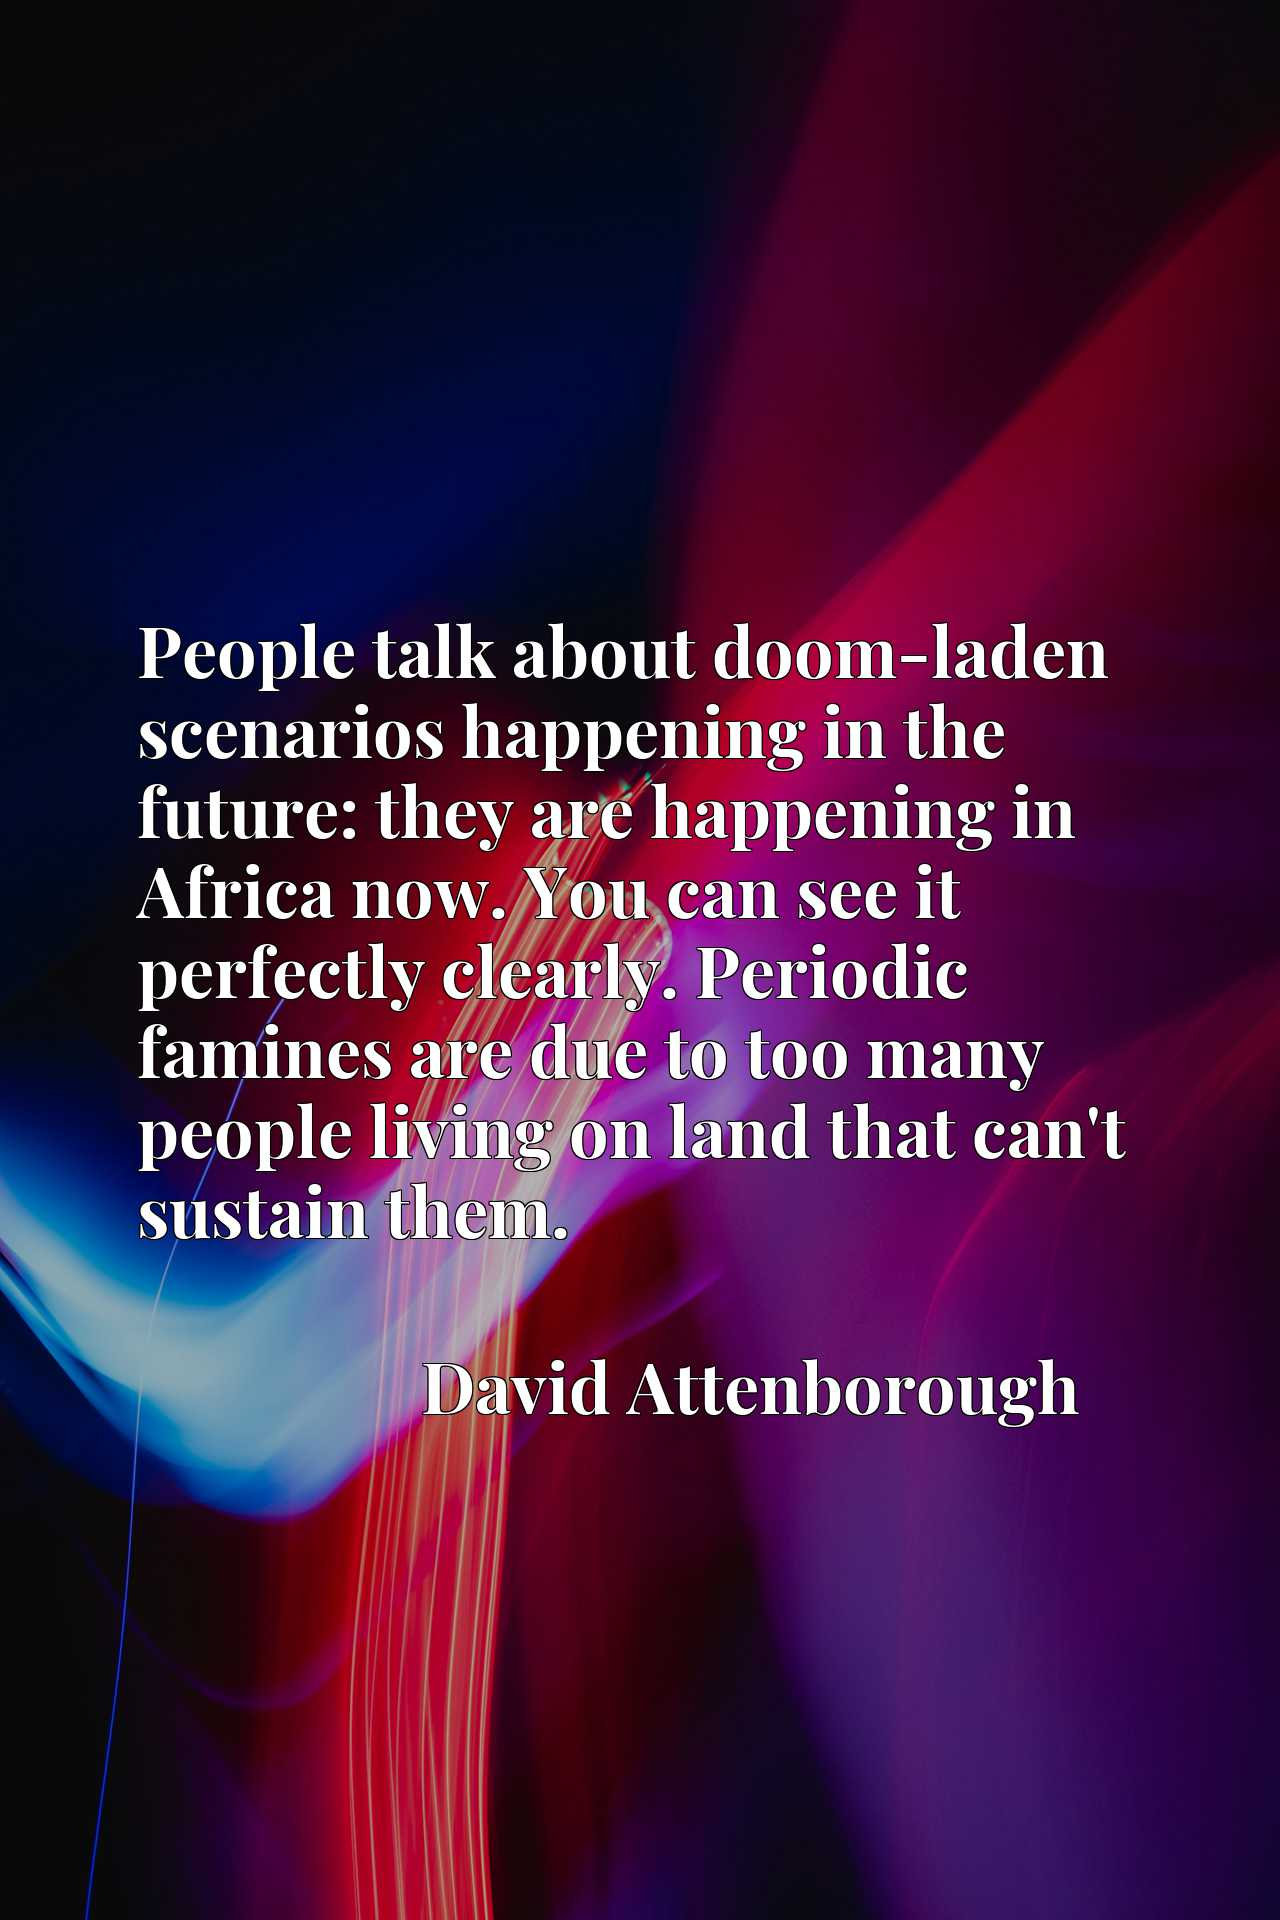 People talk about doom-laden scenarios happening in the future: they are happening in Africa now. You can see it perfectly clearly. Periodic famines are due to too many people living on land that can't sustain them.